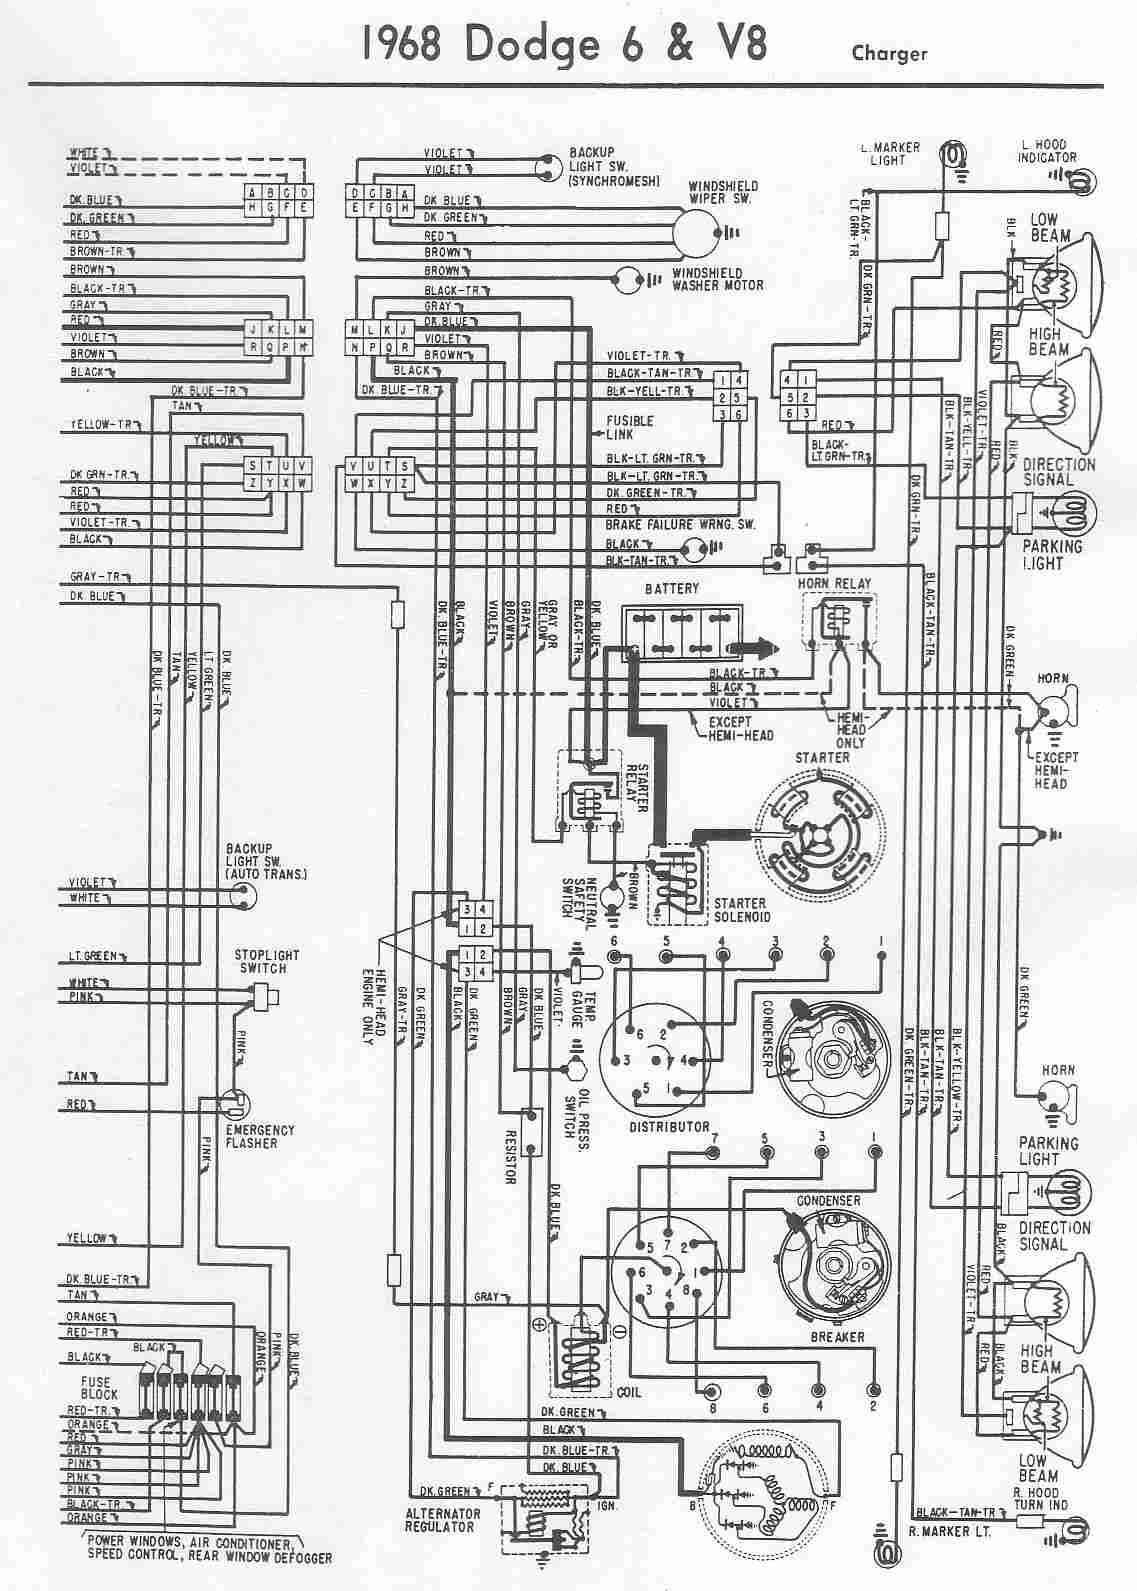 Dodge - Car Manual PDF & Diagnostic Trouble Codes on 1991 dodge cummins wiring diagram, 1992 dodge caravan wiring diagram, 98 dodge caravan wiring diagram, 2002 dodge caravan wiring diagram, 1997 dodge grand caravan wiring diagram, 99 dodge caravan wiring diagram, 2006 dodge grand caravan engine diagram, 1998 dodge viper wiring diagram, dodge caravan radio wiring diagram, 1991 dodge daytona wiring diagram, 1991 dodge w150 wiring diagram, 1993 dodge d150 wiring diagram, dodge grand caravan electrical diagram, 1991 dodge dynasty wiring diagram, 1998 dodge grand caravan wiring diagram, 1991 dodge caravan serpentine belt diagram, dodge caravan ac wiring diagram, 2004 dodge grand caravan fuse diagram, 2003 dodge caravan wiring diagram, 2005 dodge caravan wiring diagram,